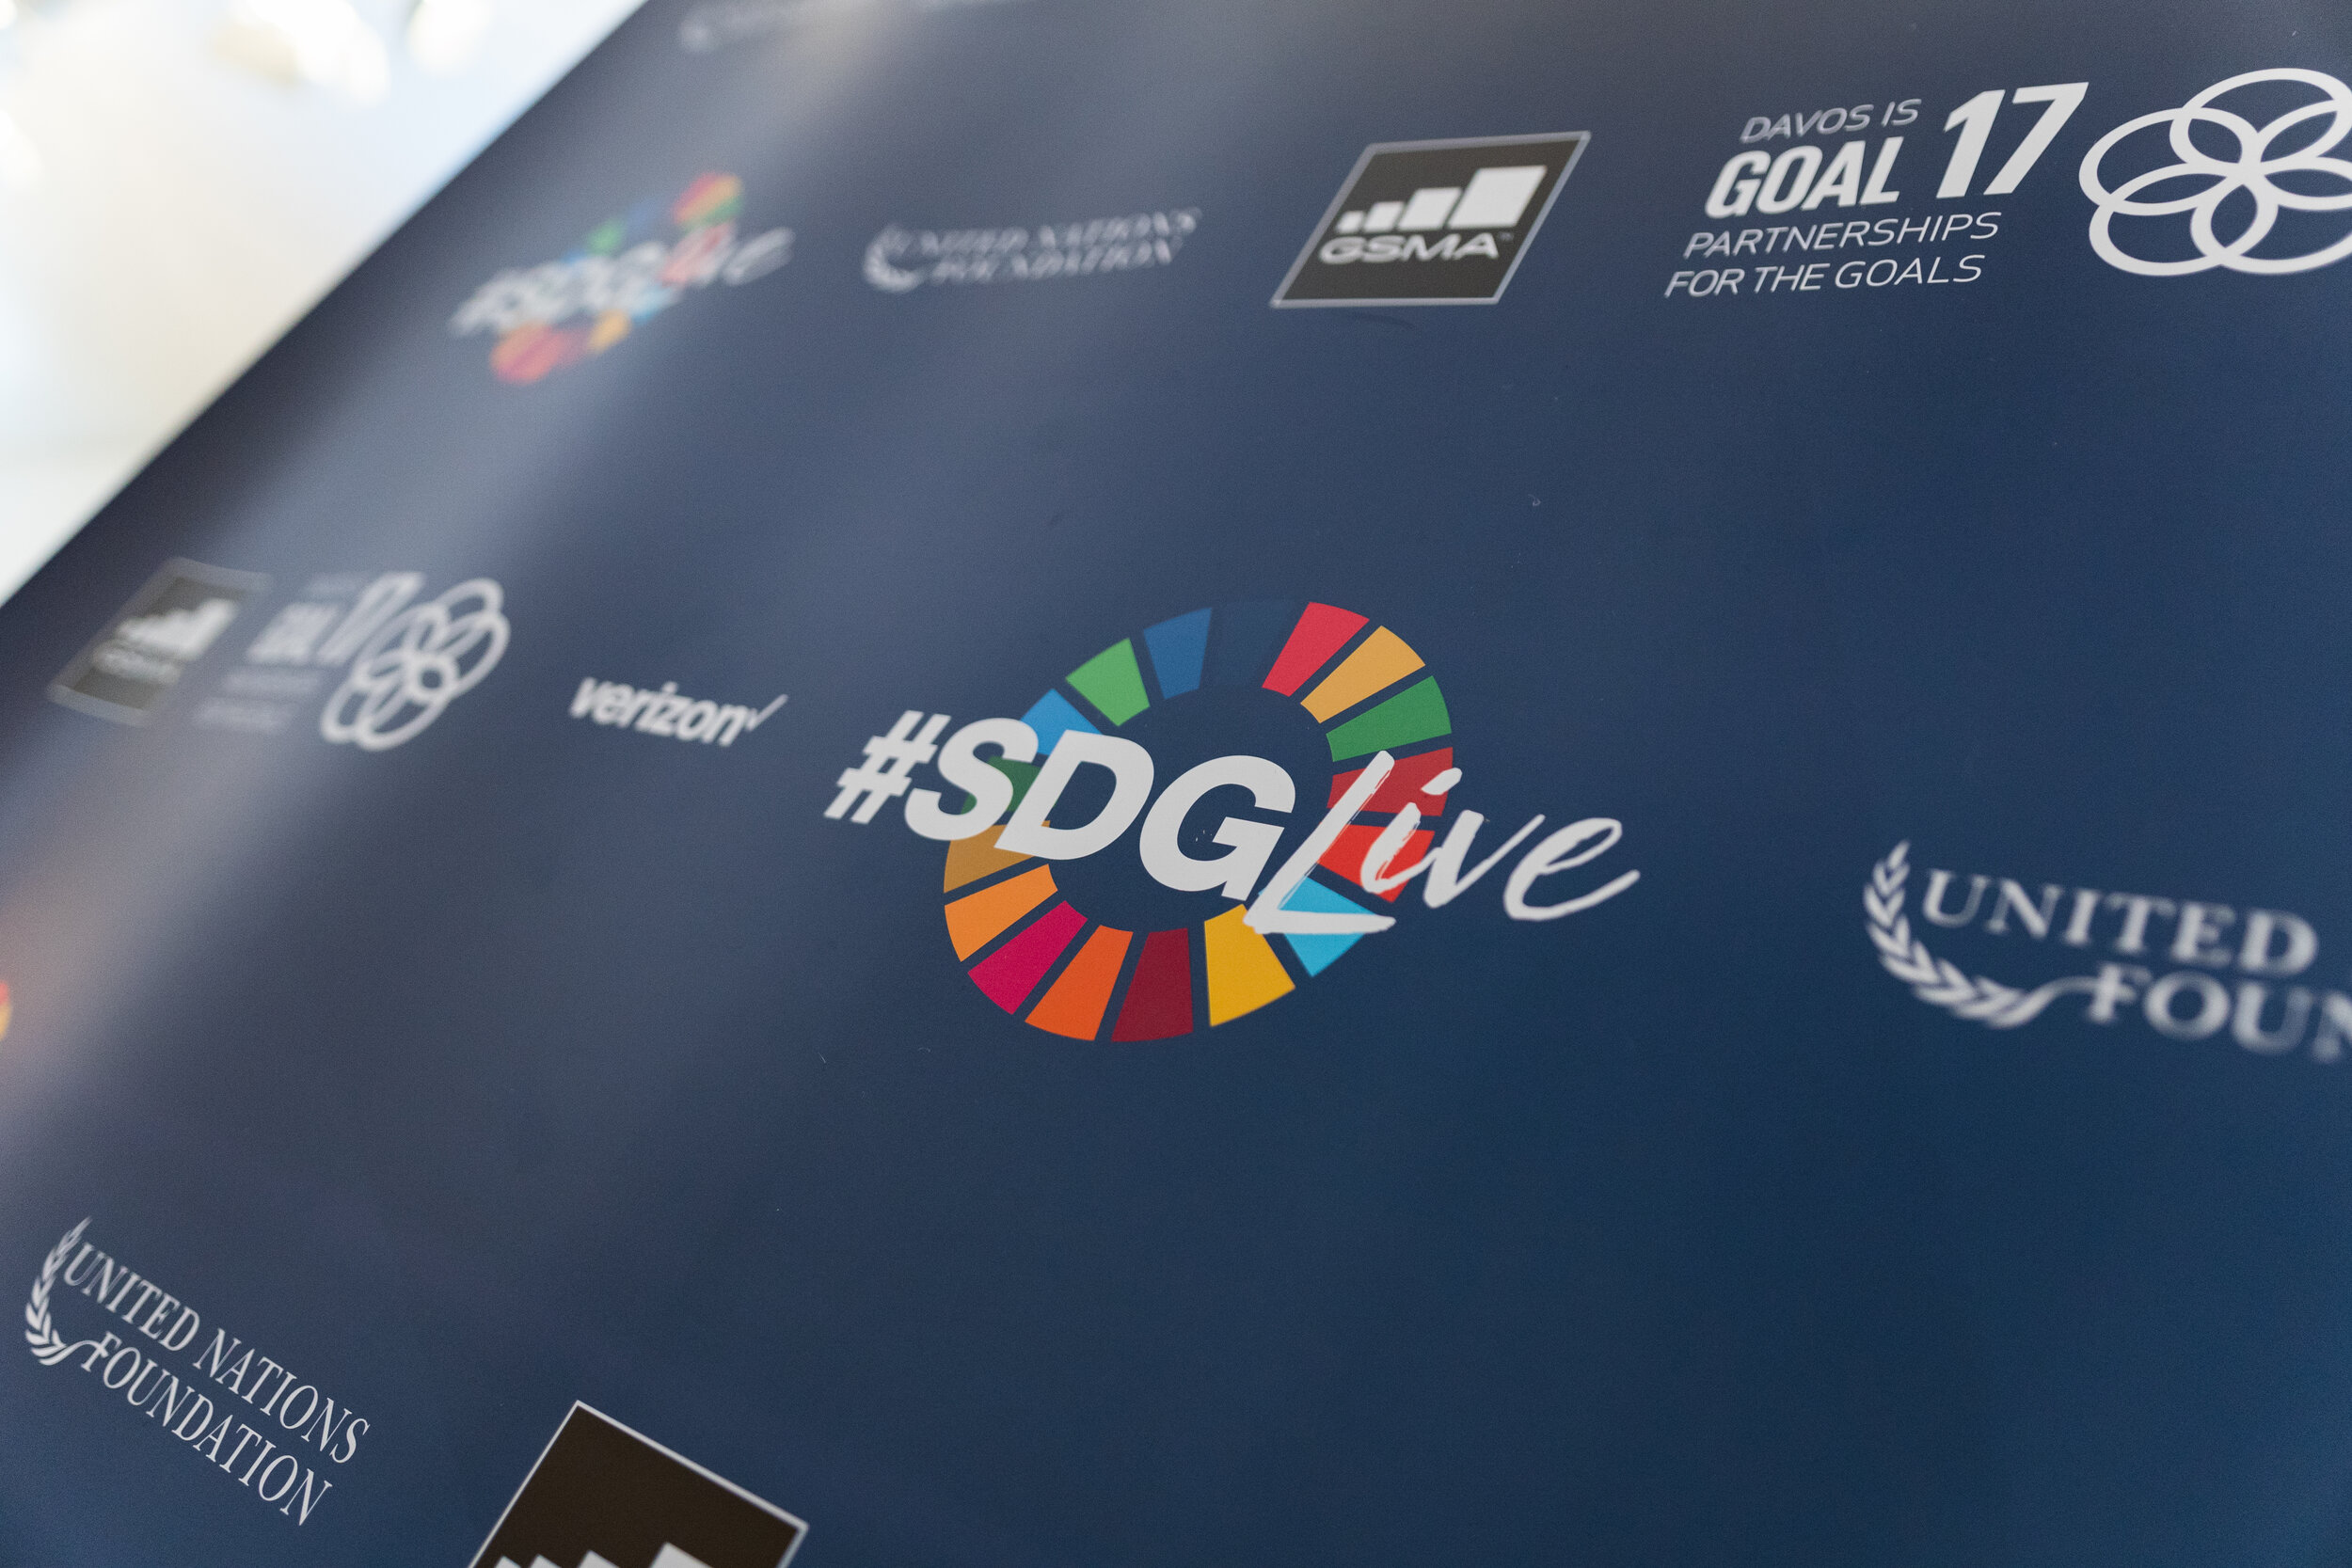 WEF SDGLive Wrap Up_1 (1 of 10).jpg